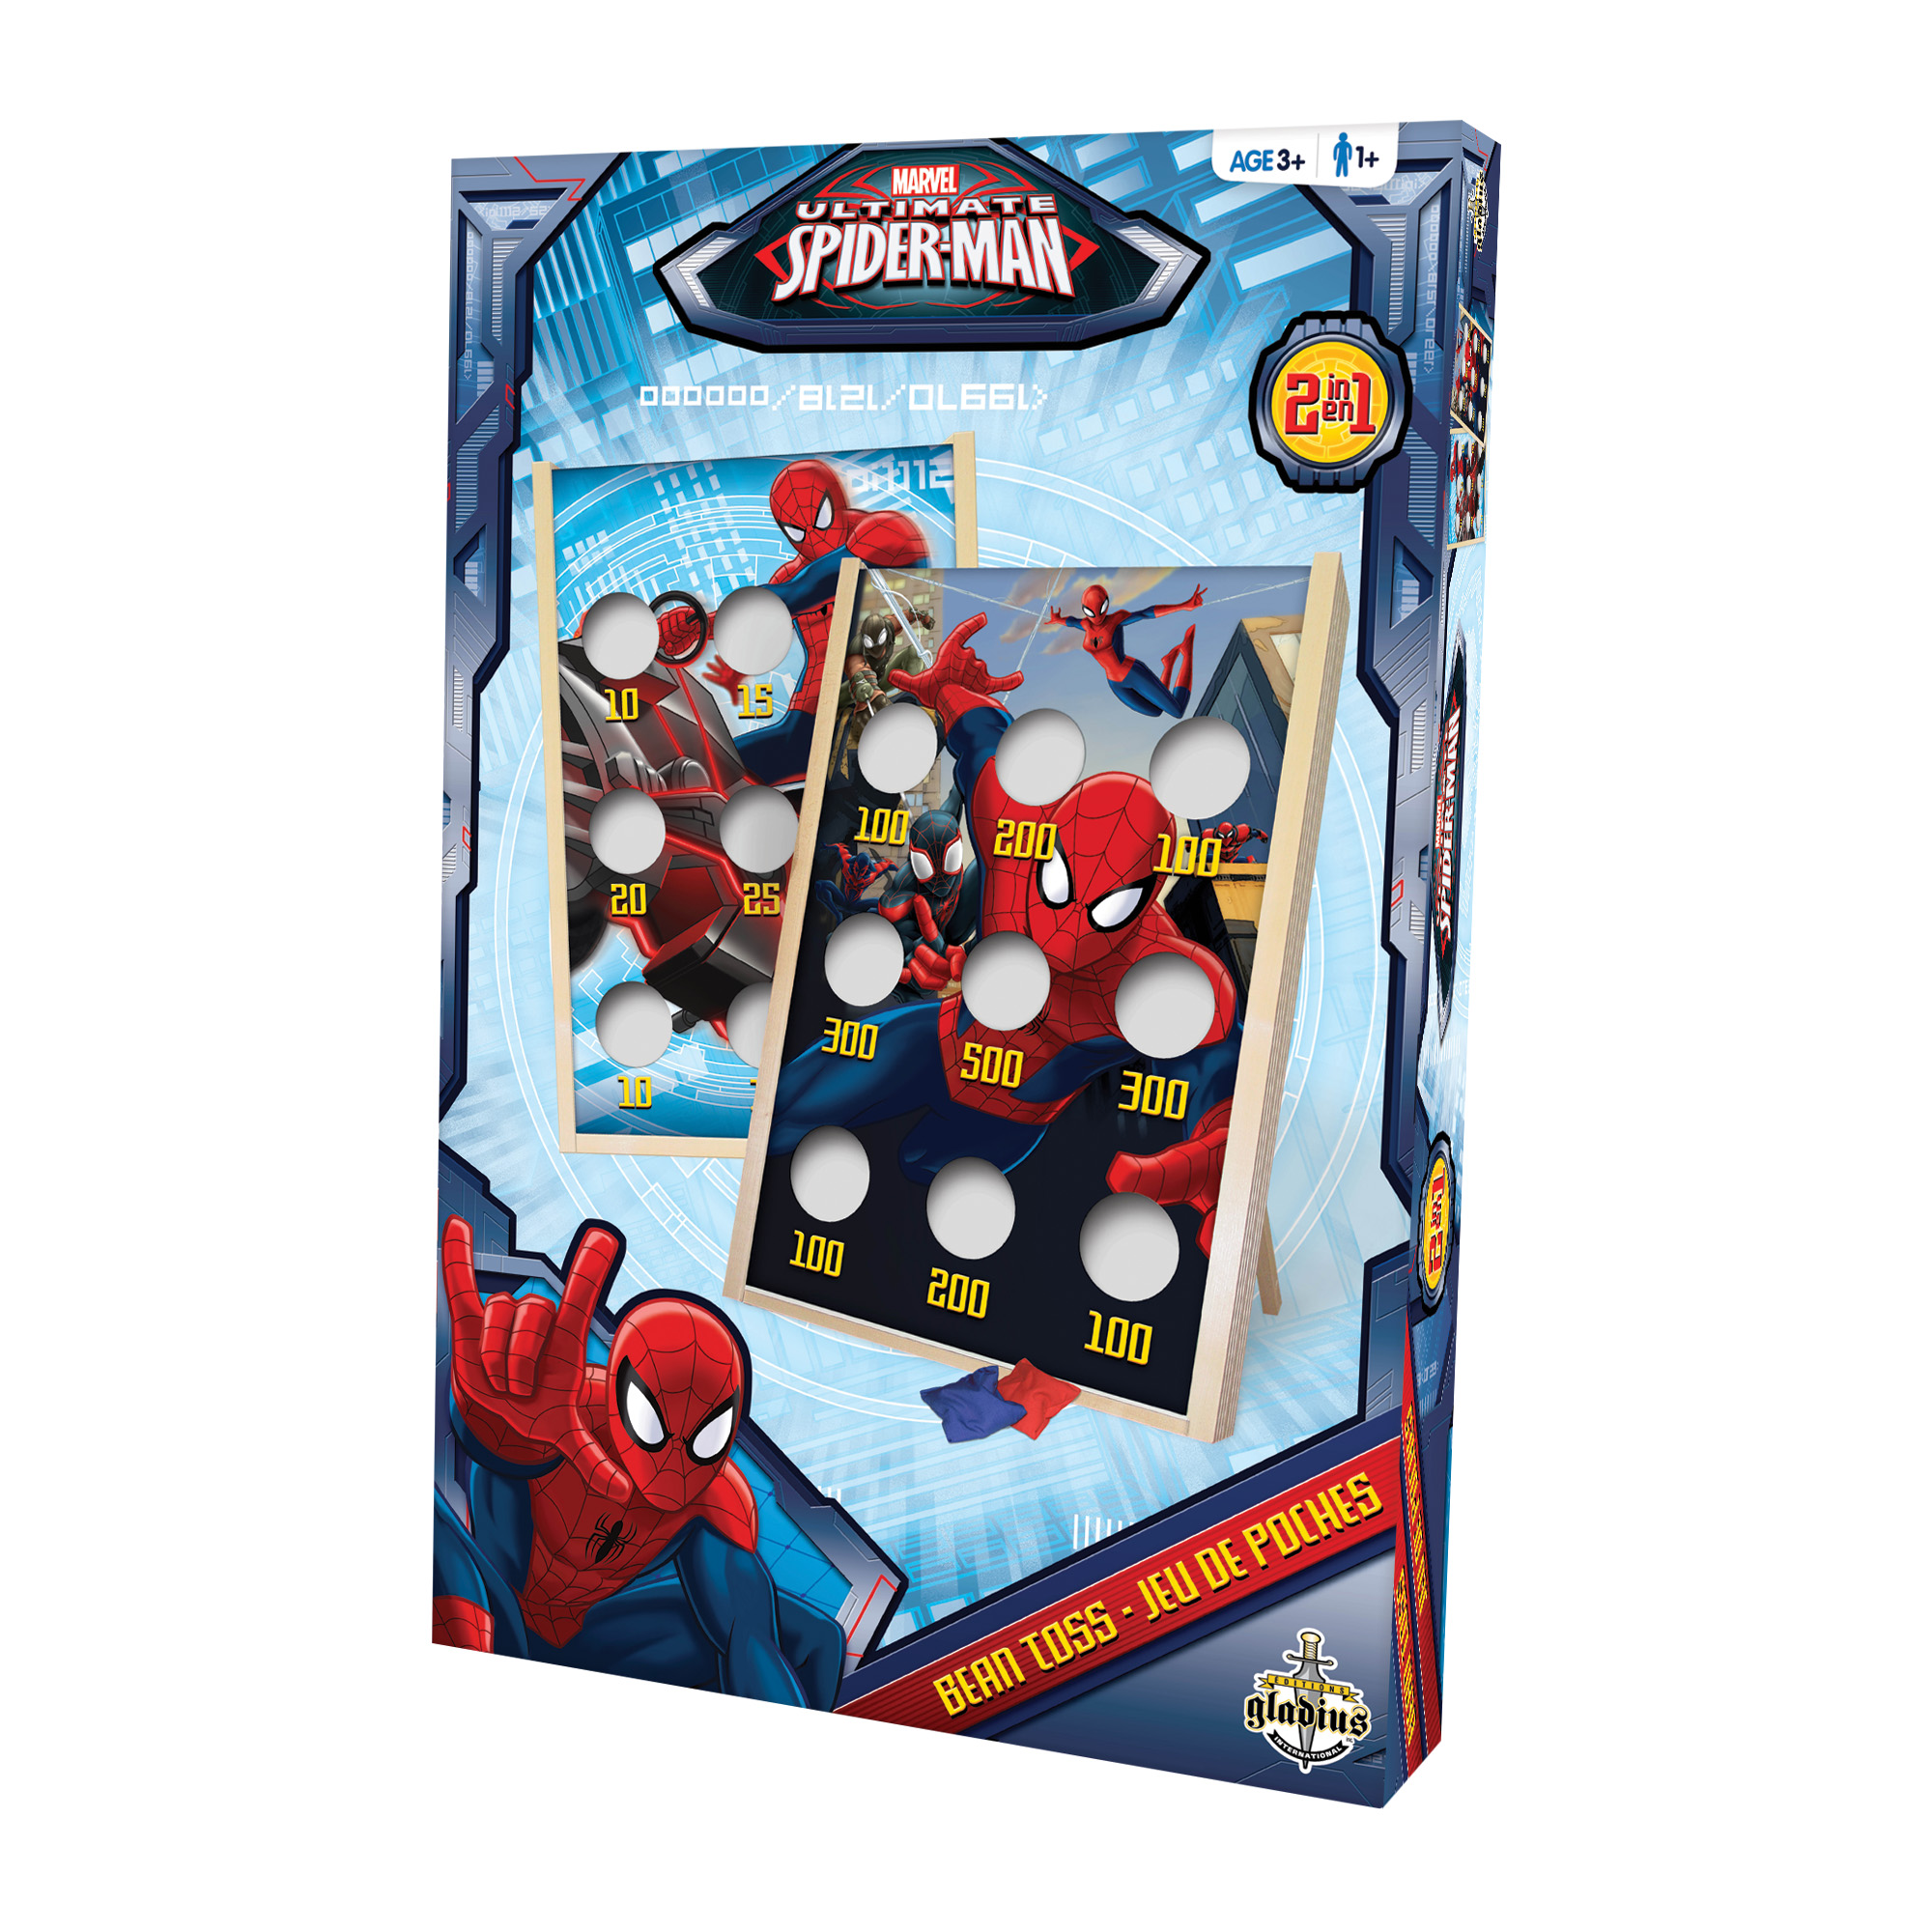 jeux de soci t jeu de poches spider man habilet ditions gladius. Black Bedroom Furniture Sets. Home Design Ideas